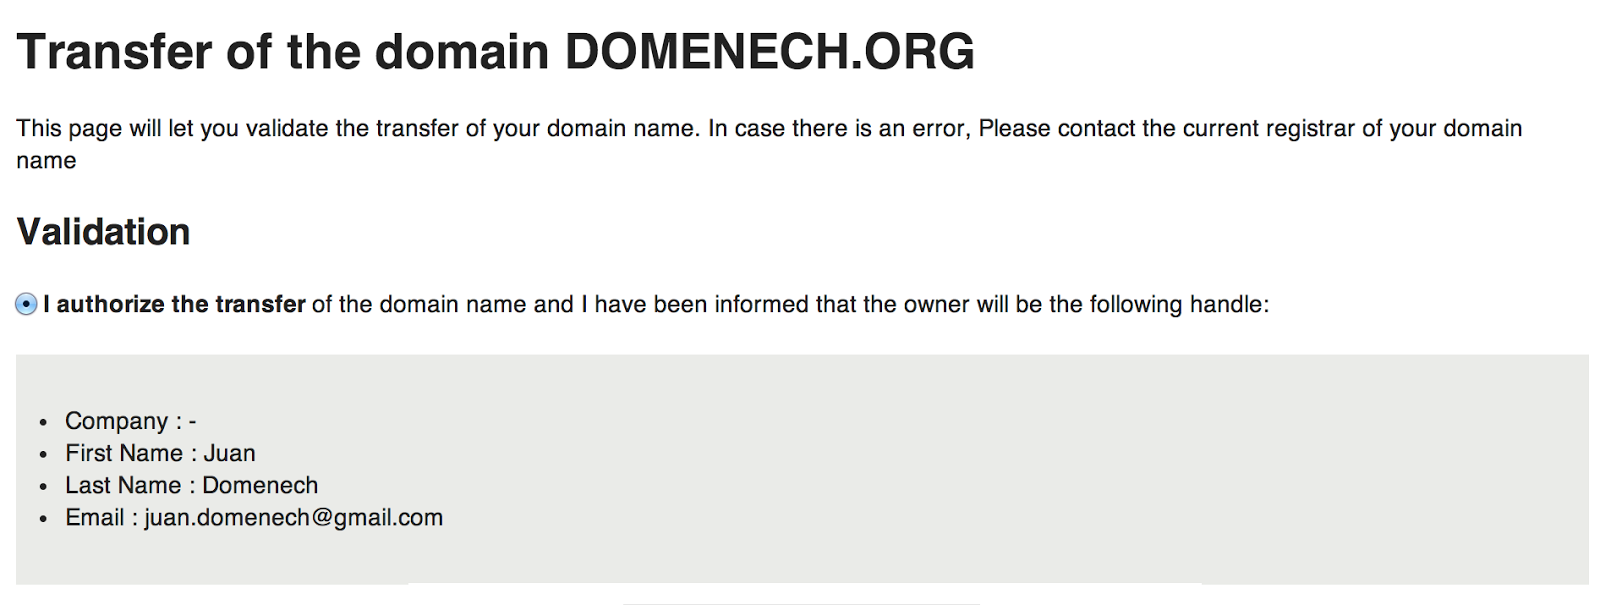 blog-domenech-org-transfer-internet-domain-to-aws-route-53-step-approve-transfer-8